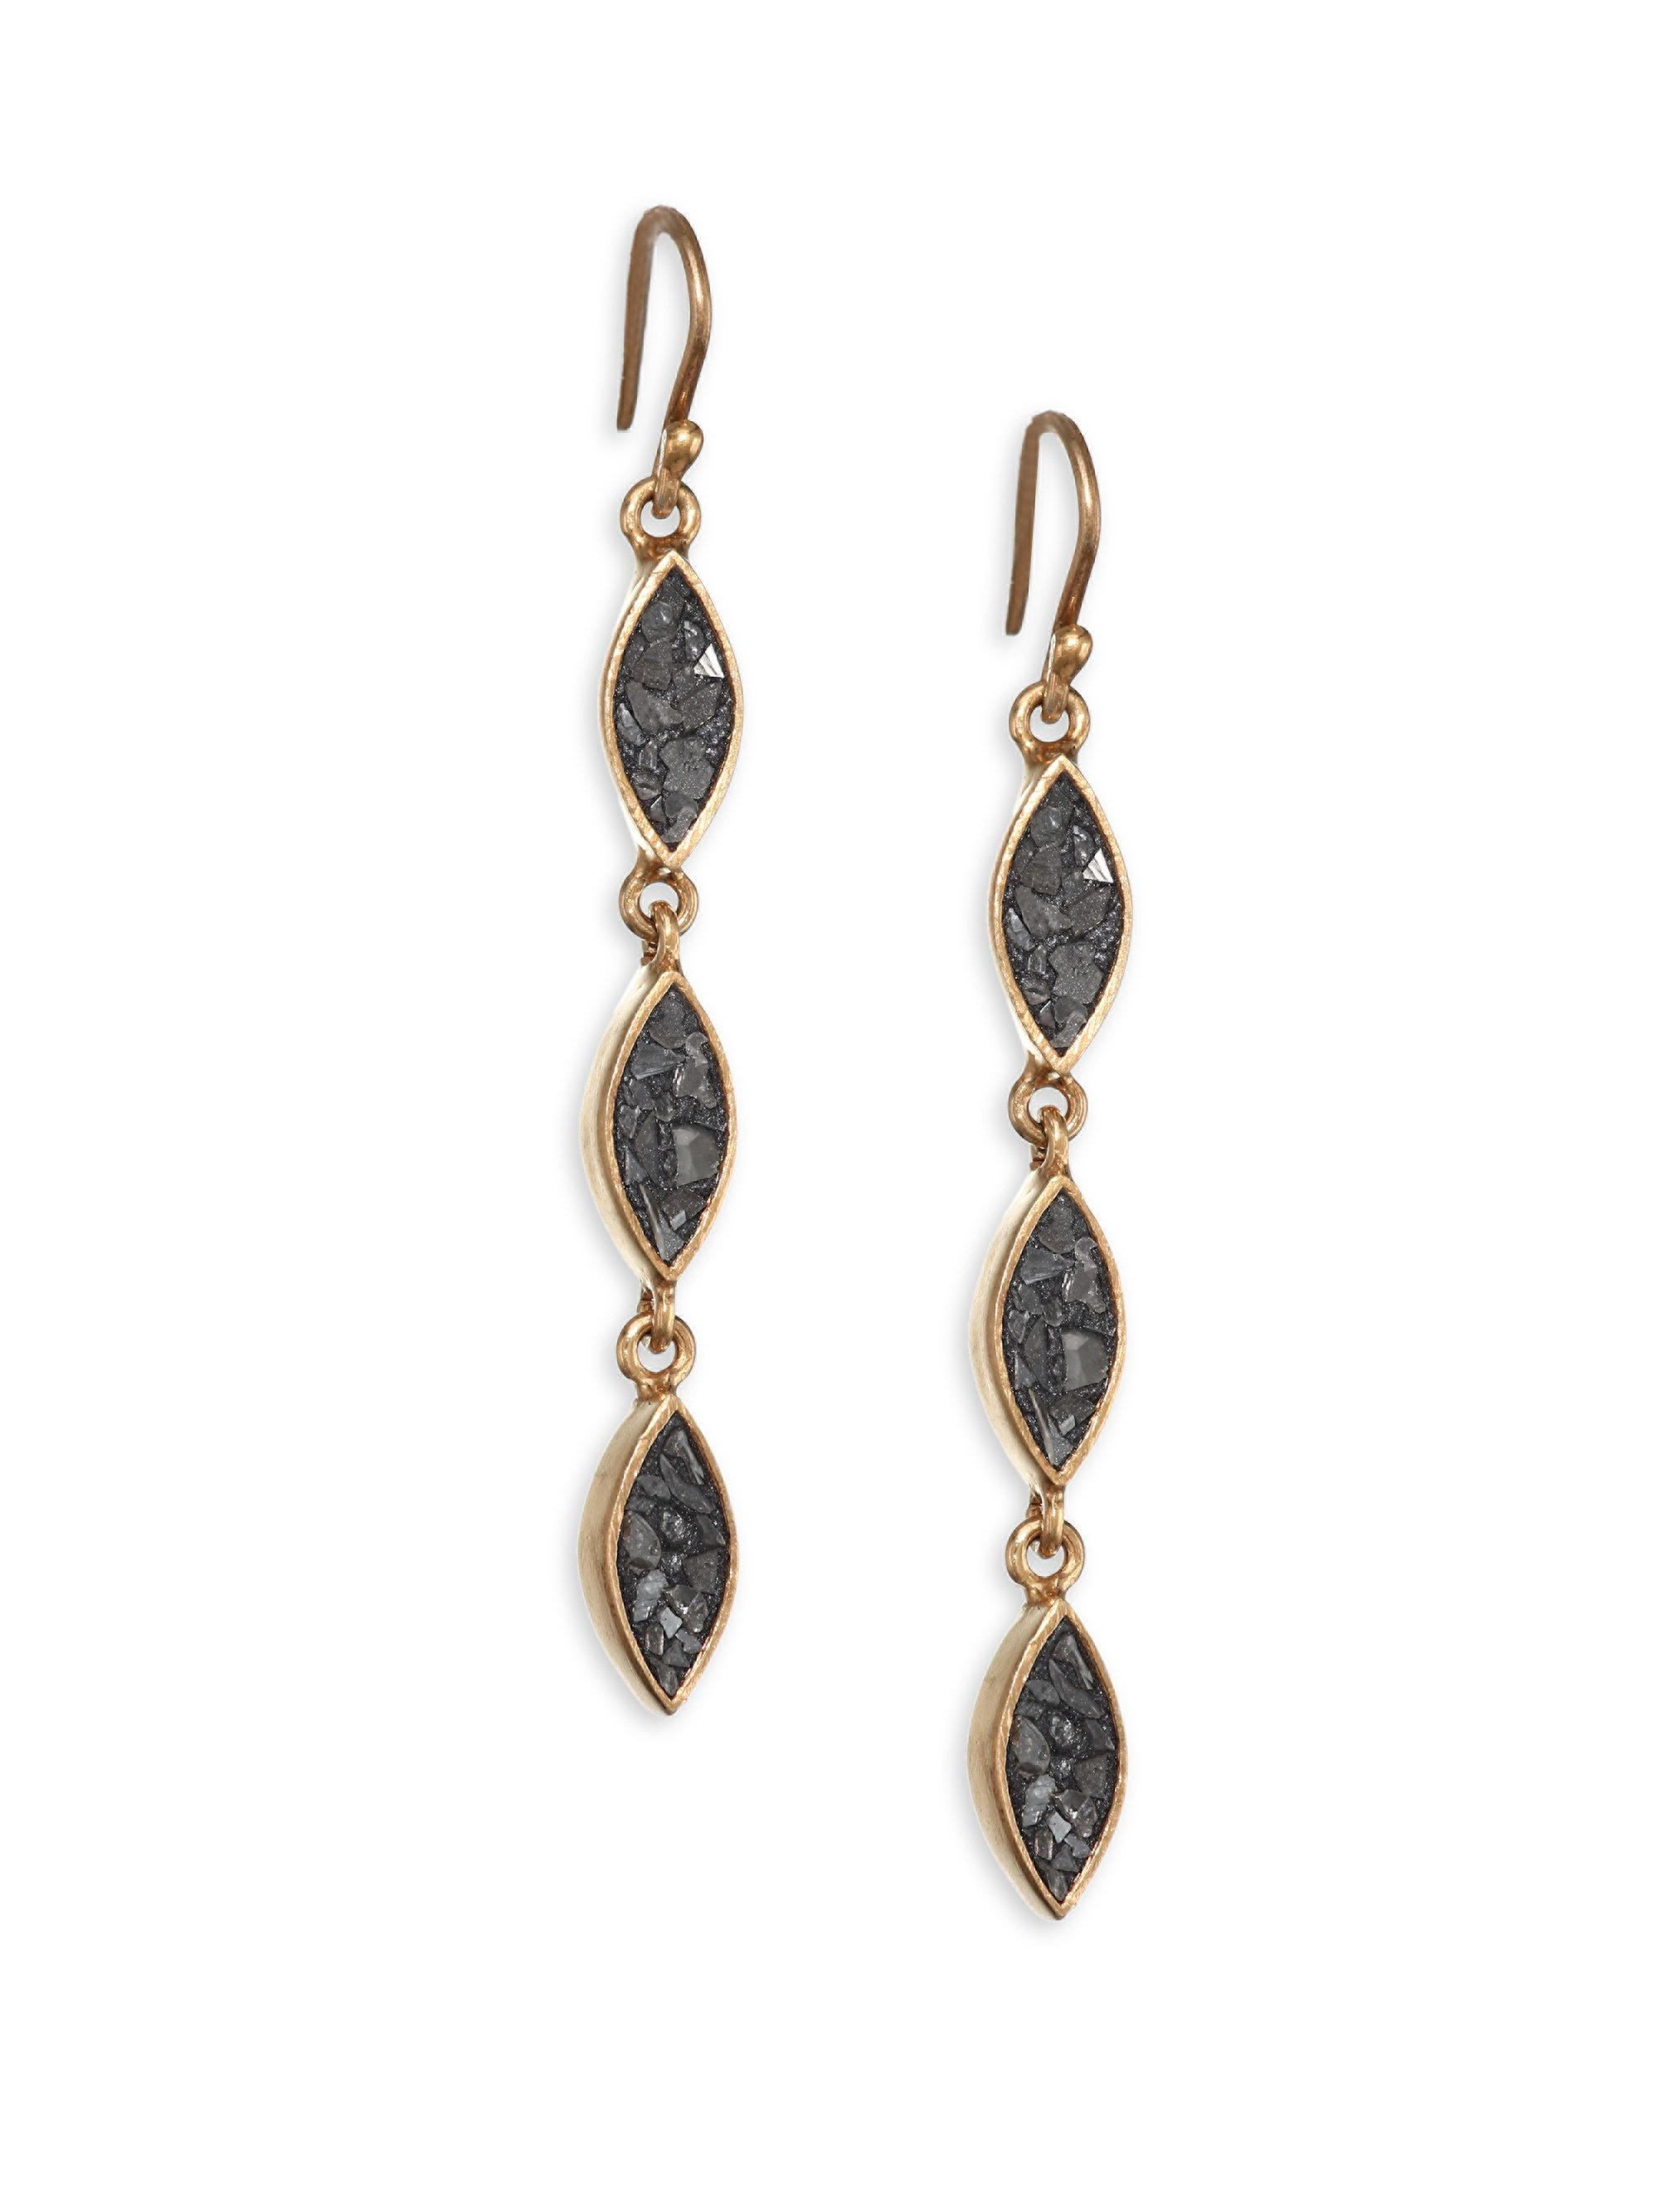 Lyst Shana Gulati Banjara Three Tier Linear Drop Earrings in Metallic